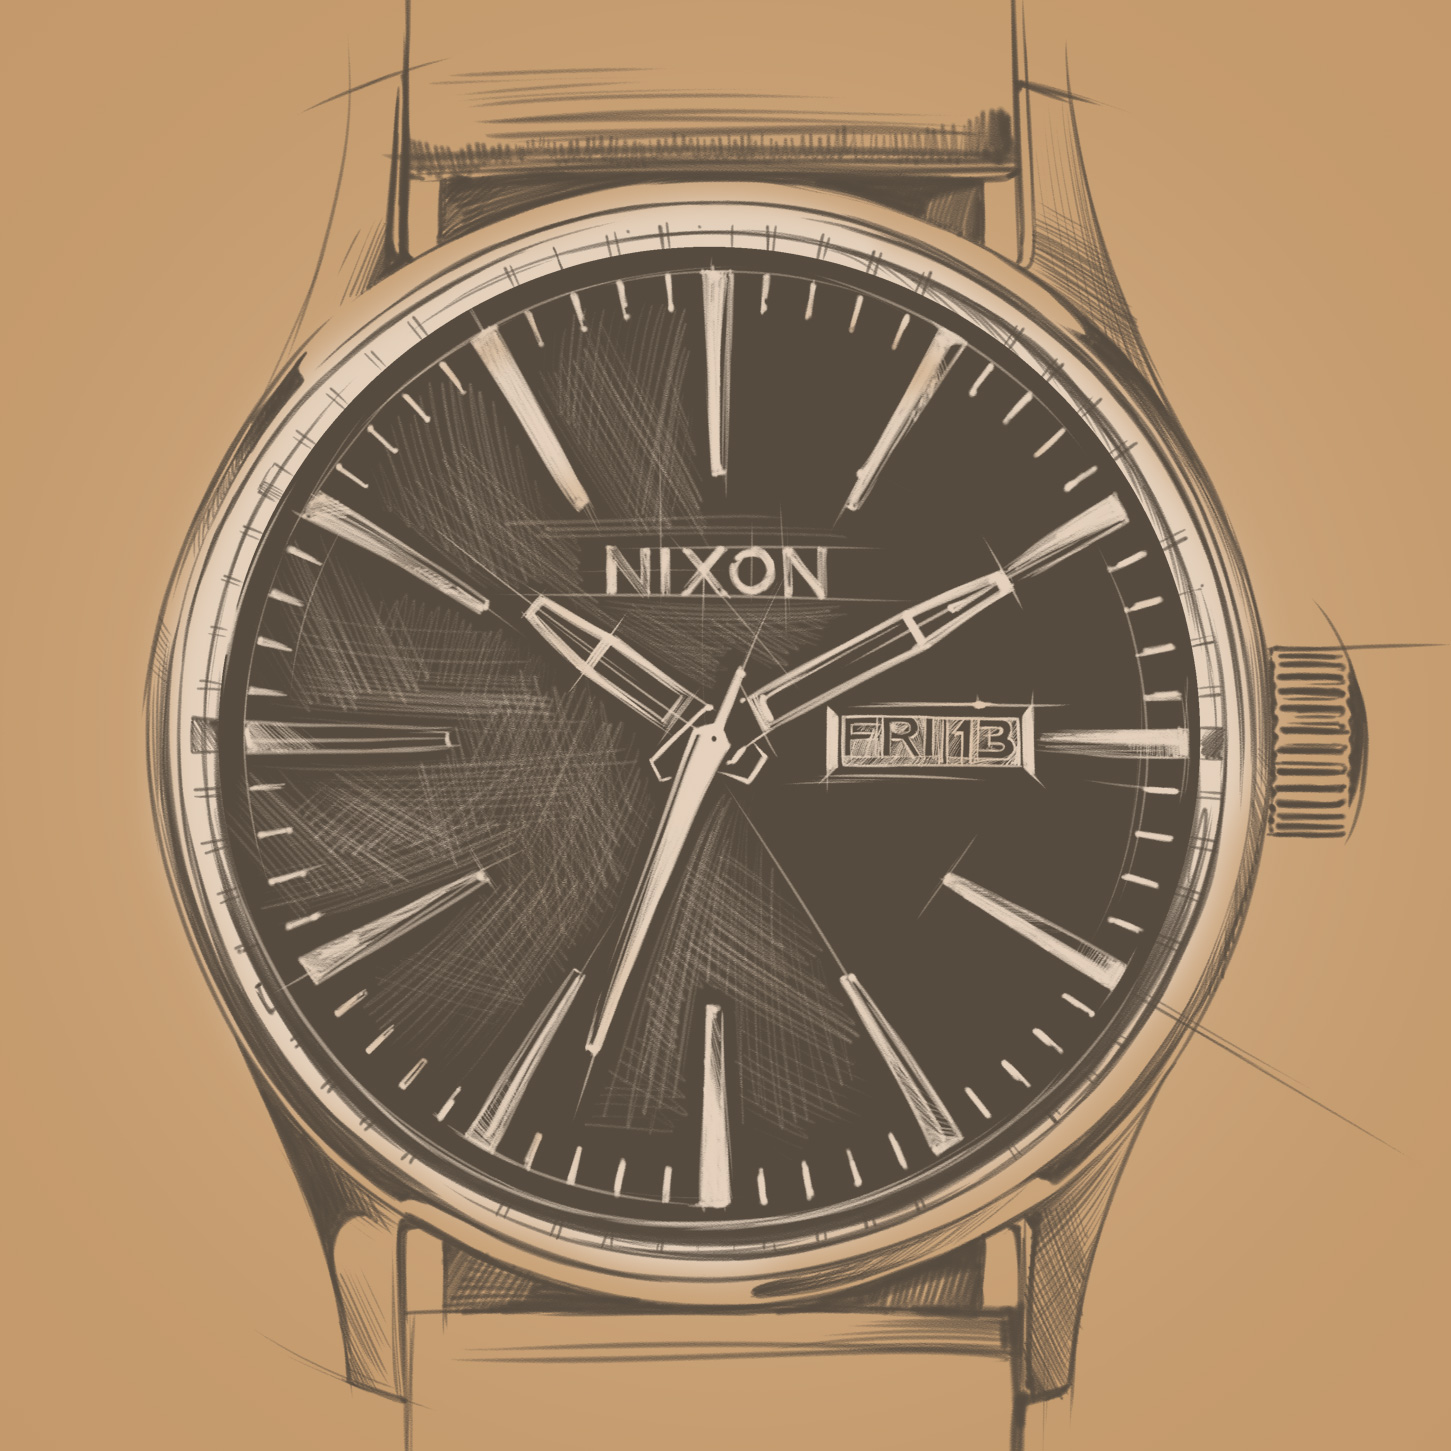 NIXON WATCHES   PRODUCT RENDERING / PATTERNS / ILLUSTRATION / POSTERS